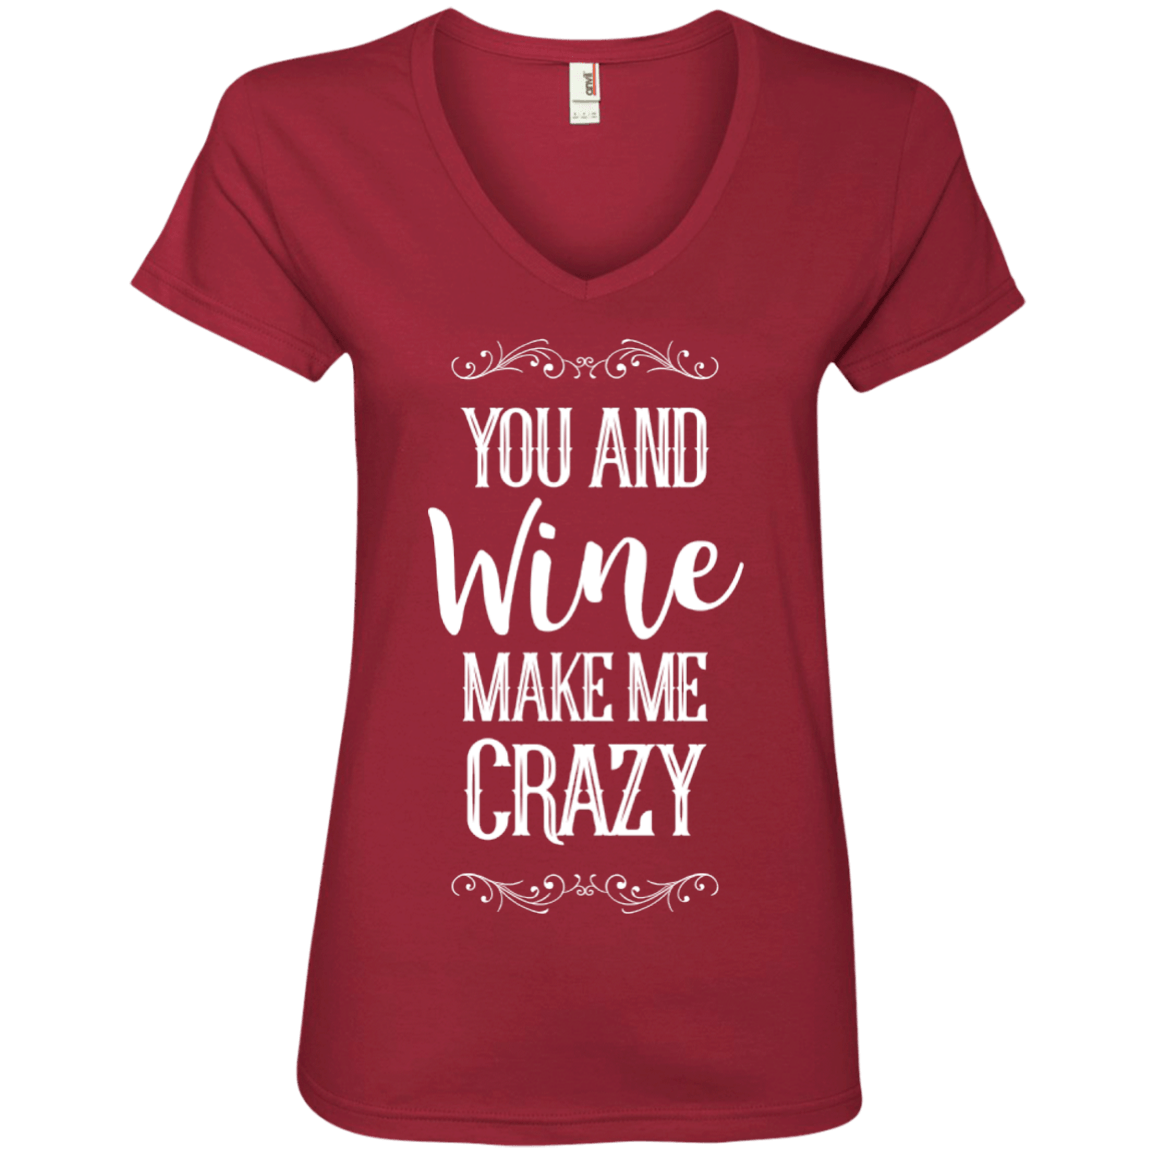 You and Wine Make Me Crazy